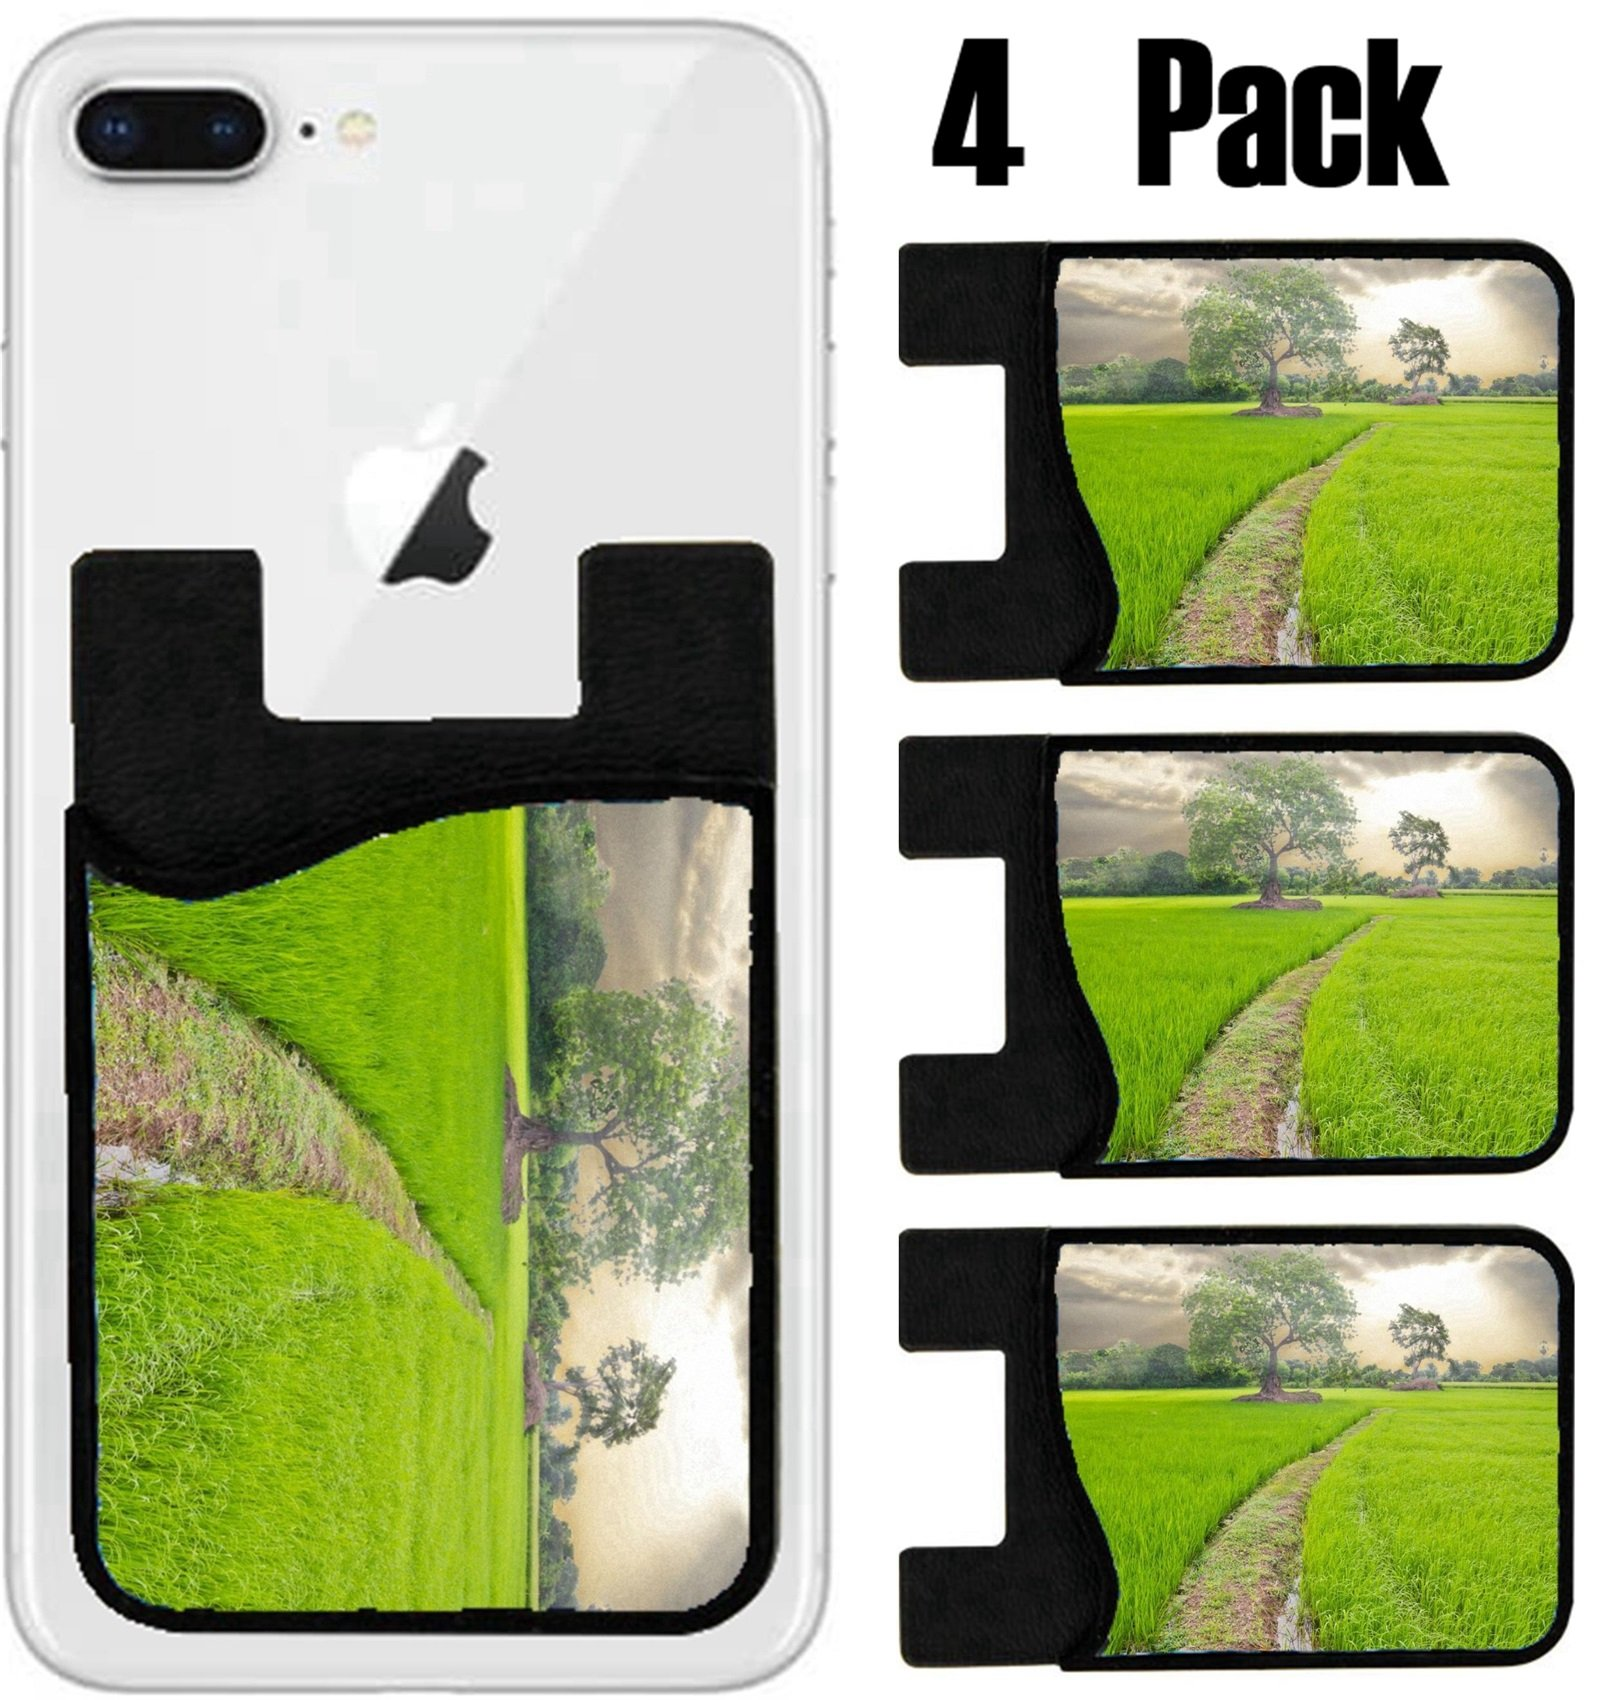 MSD Phone Card holder, sleeve/wallet for iPhone Samsung Android and all smartphones with removable microfiber screen cleaner Silicone card Caddy(4 Pack) IMAGE ID 30715275 rice field